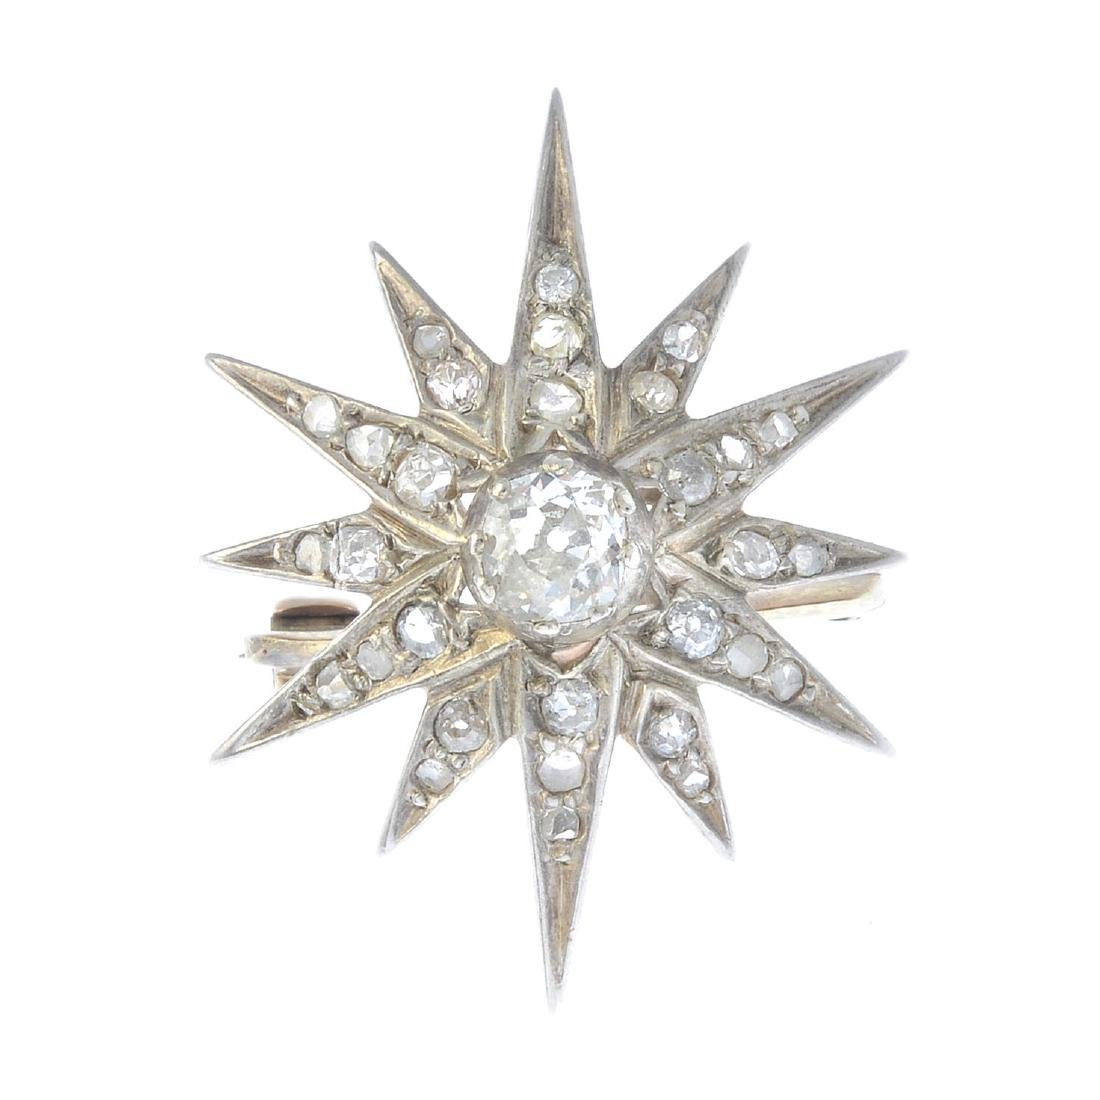 A late Victorian gold diamond star brooch. The central